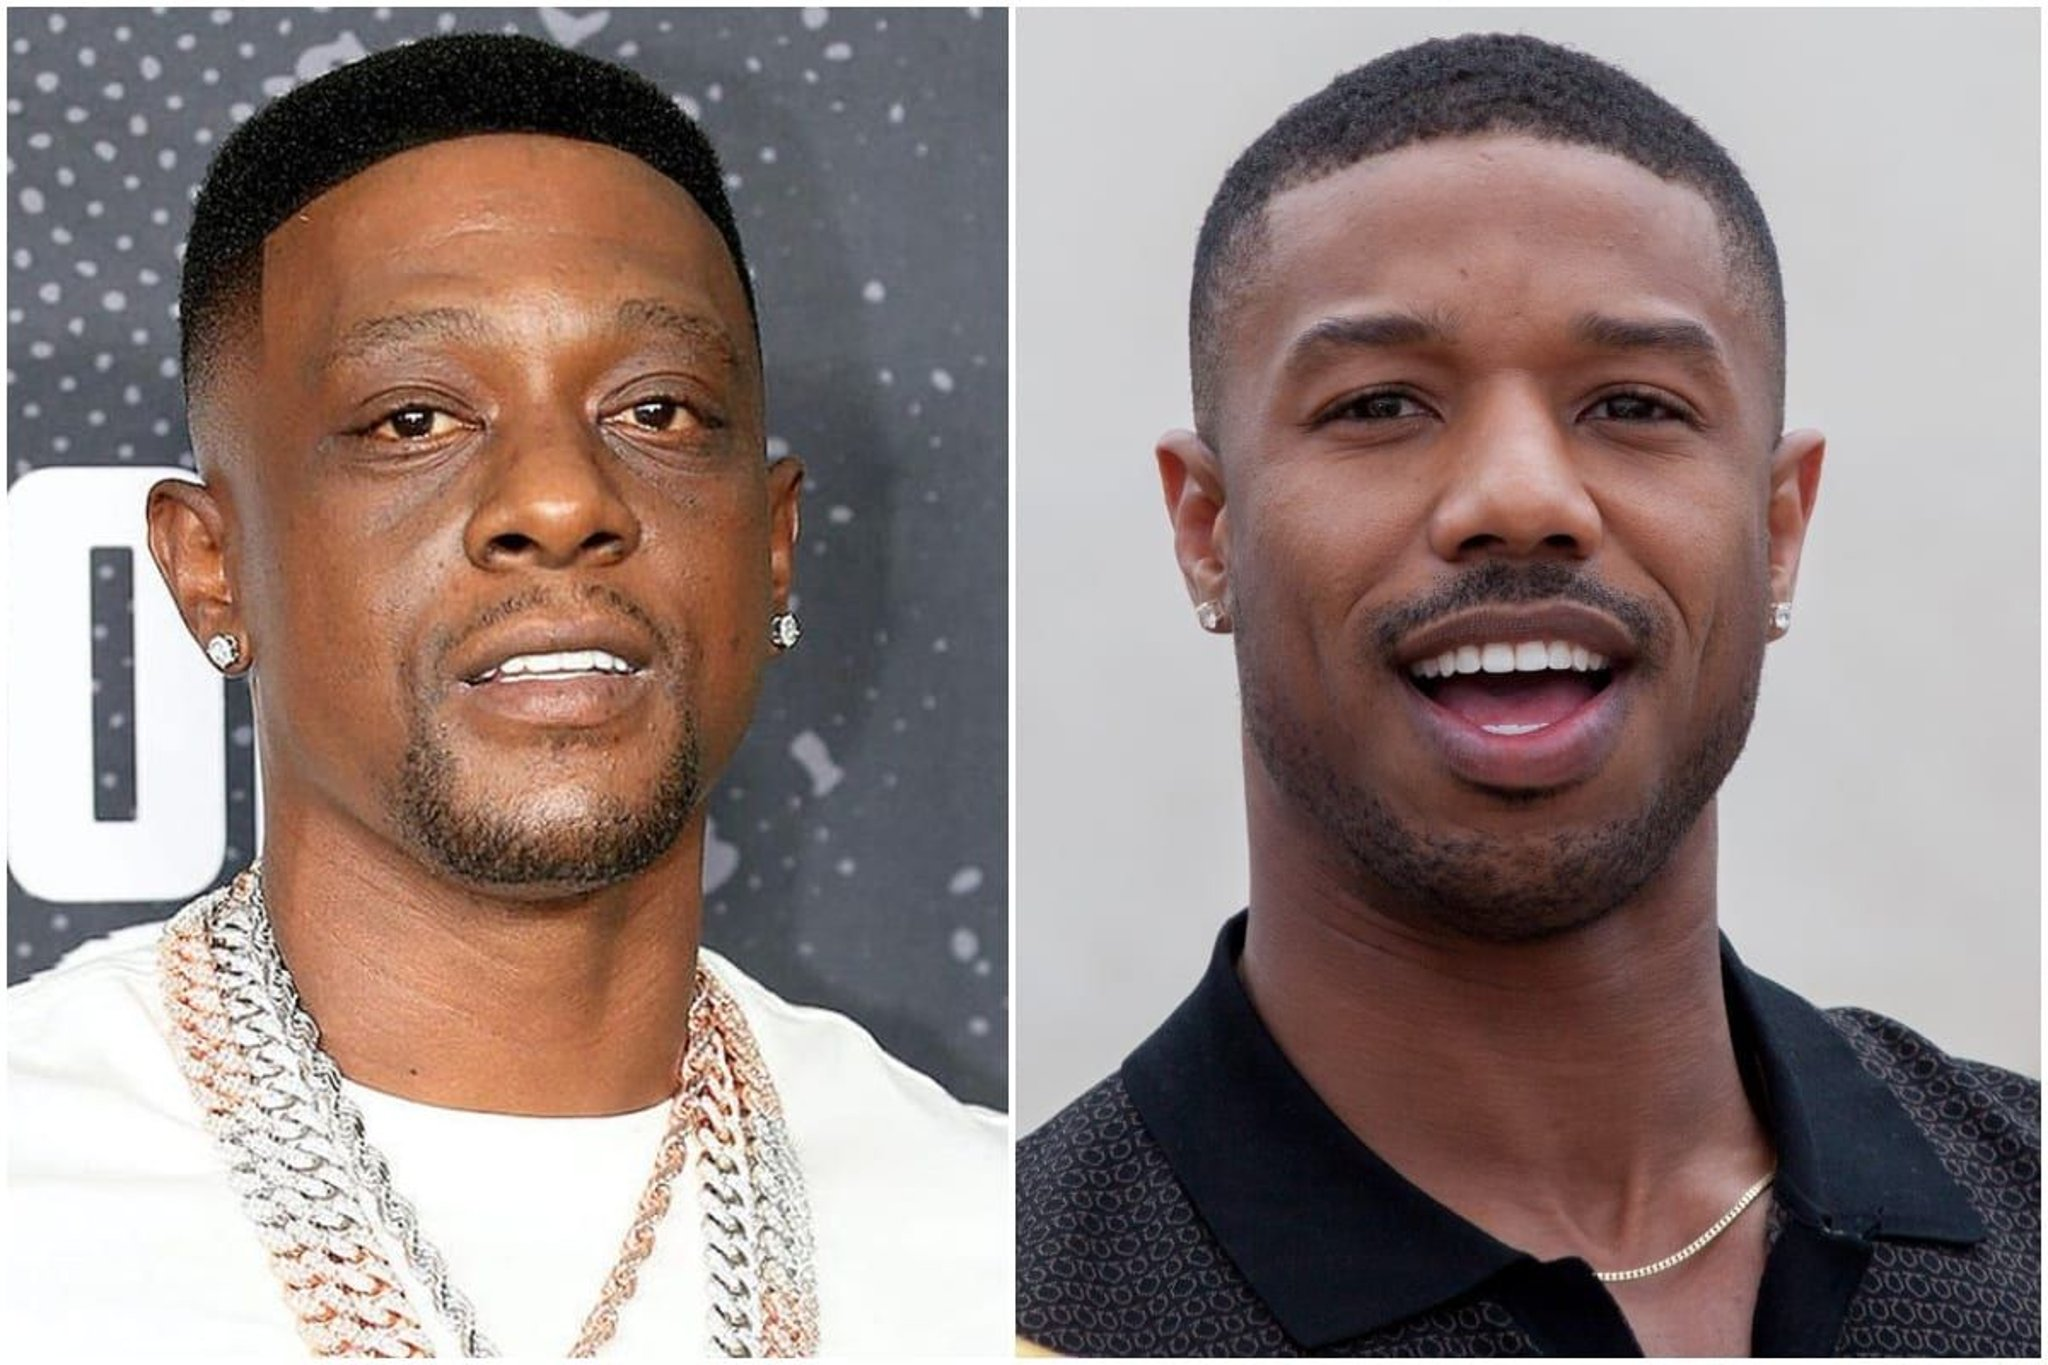 What does the term 'simp' mean and why it was used by US rapper Boosie to describe actor Michael B Jordan